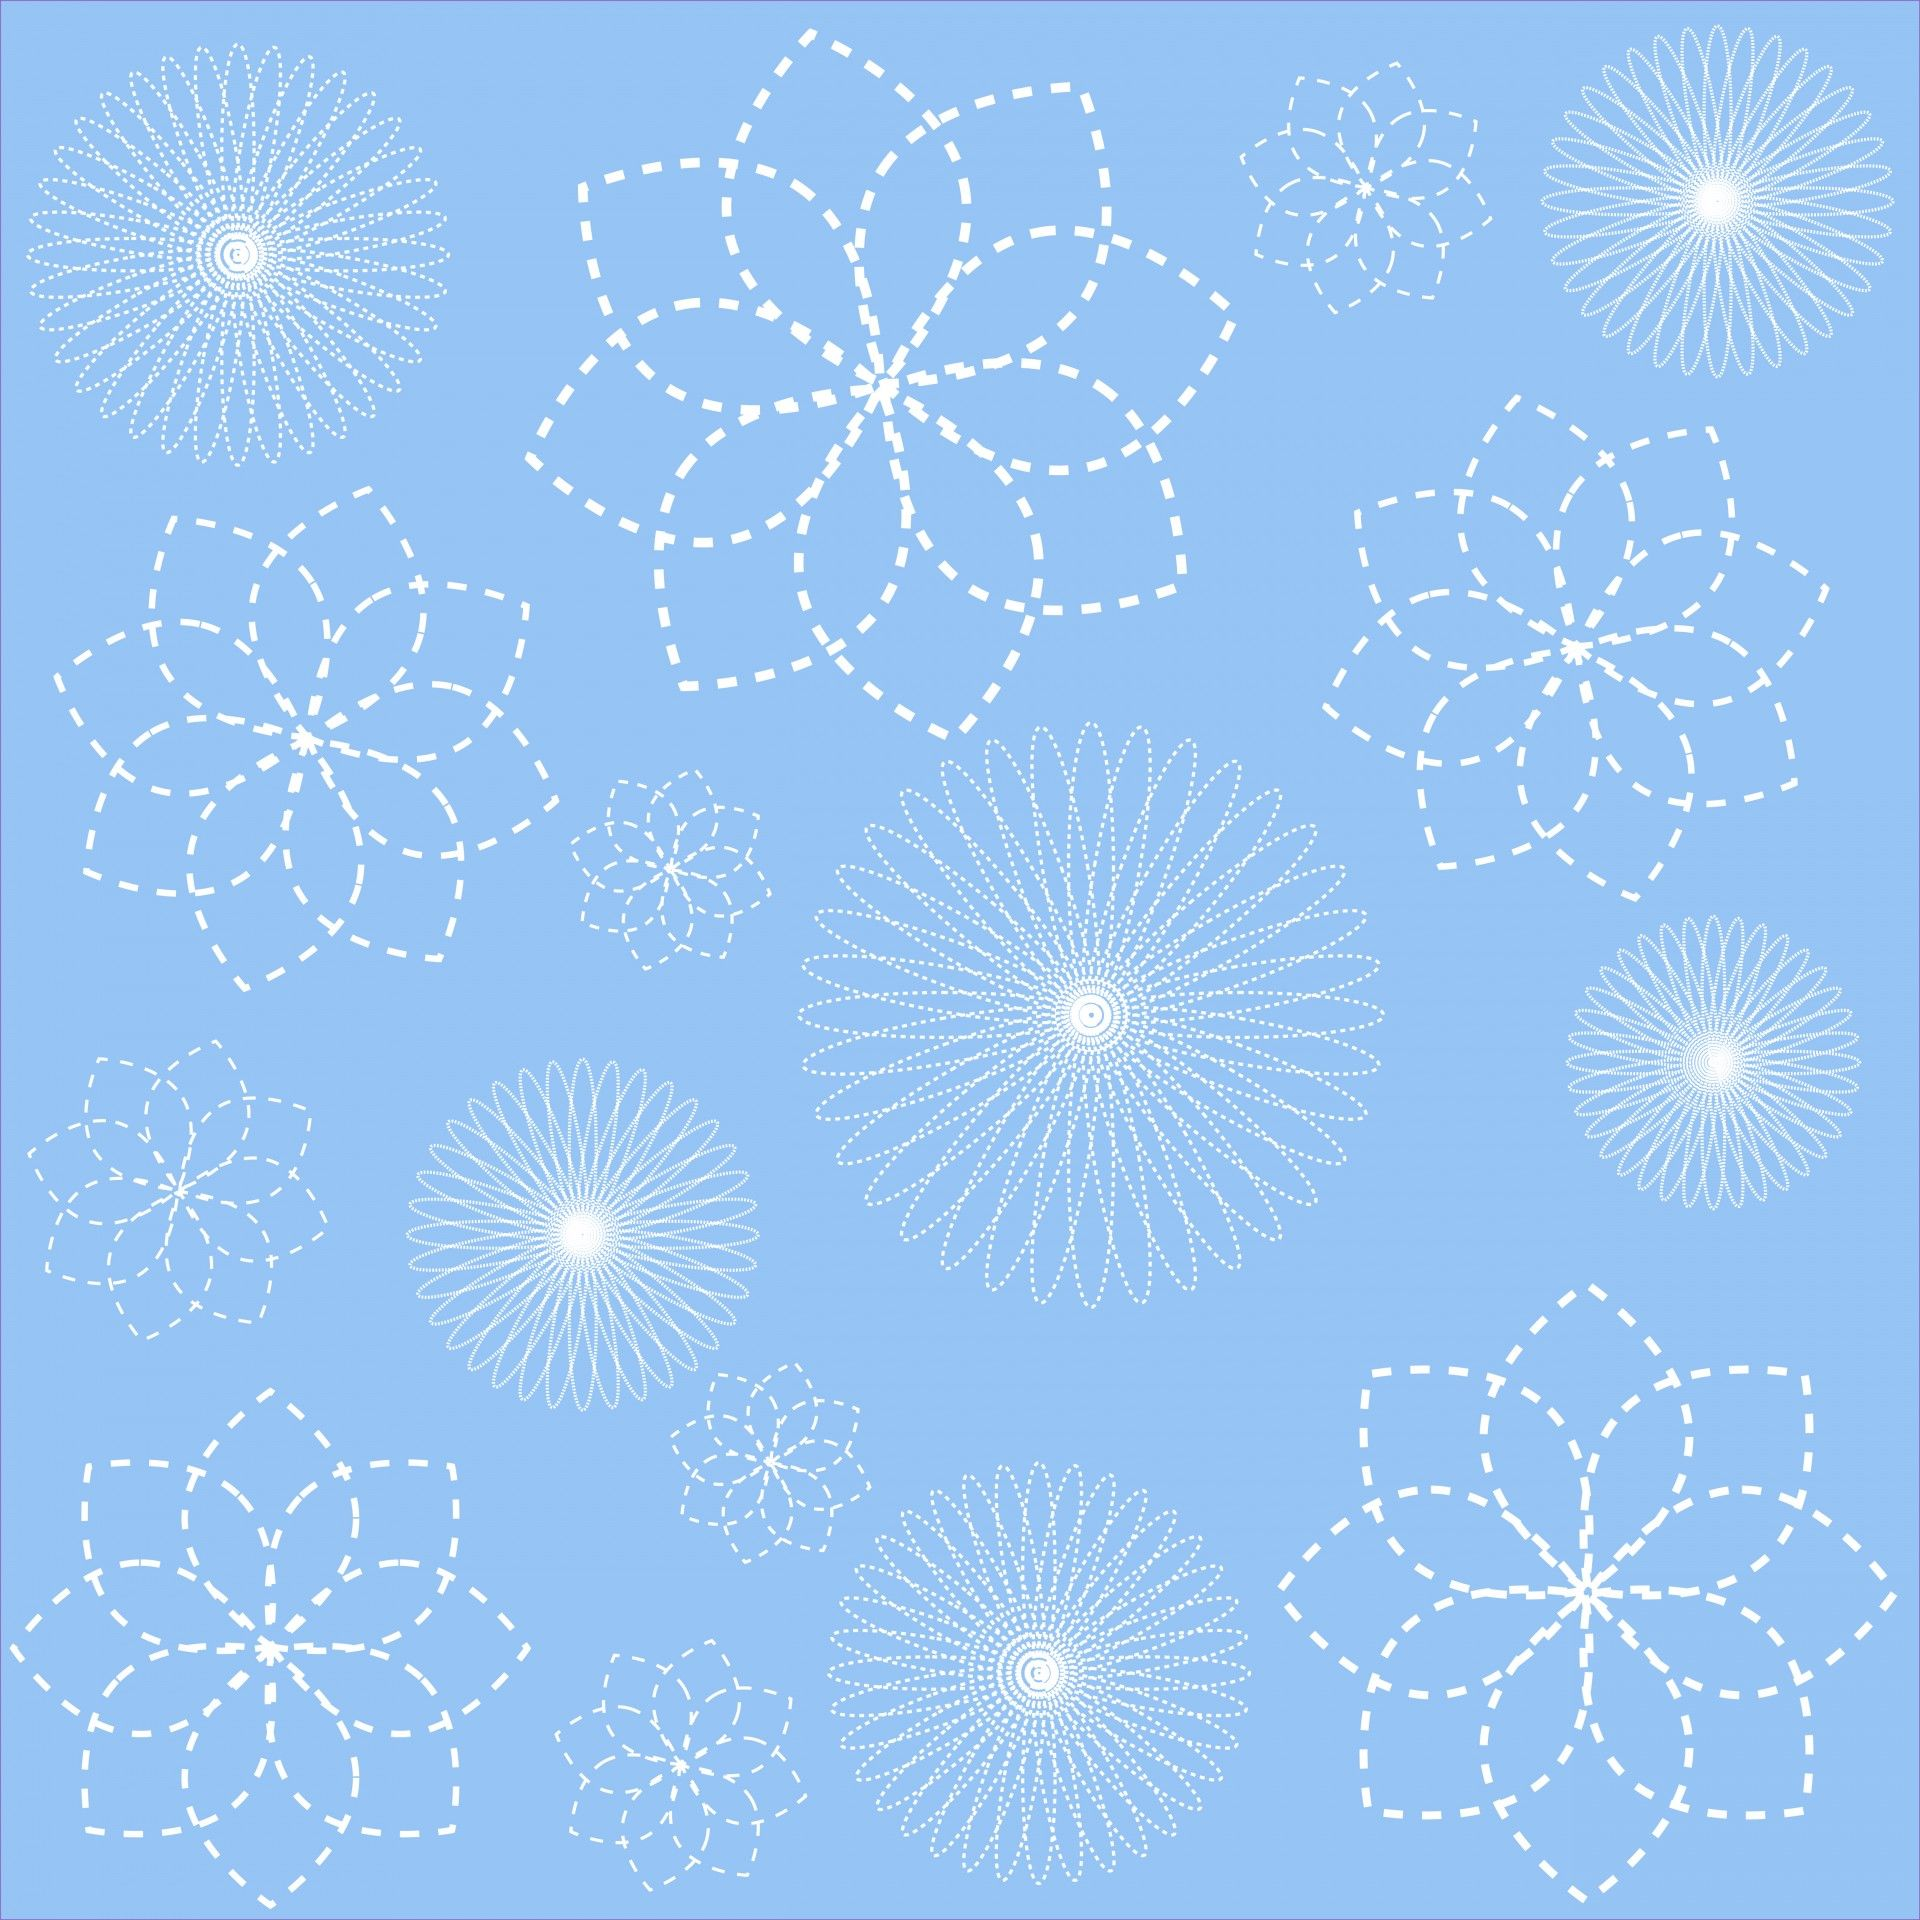 Floral Spirals Wallpaper Background Free Stock Photo HD - Public Domain Pictures